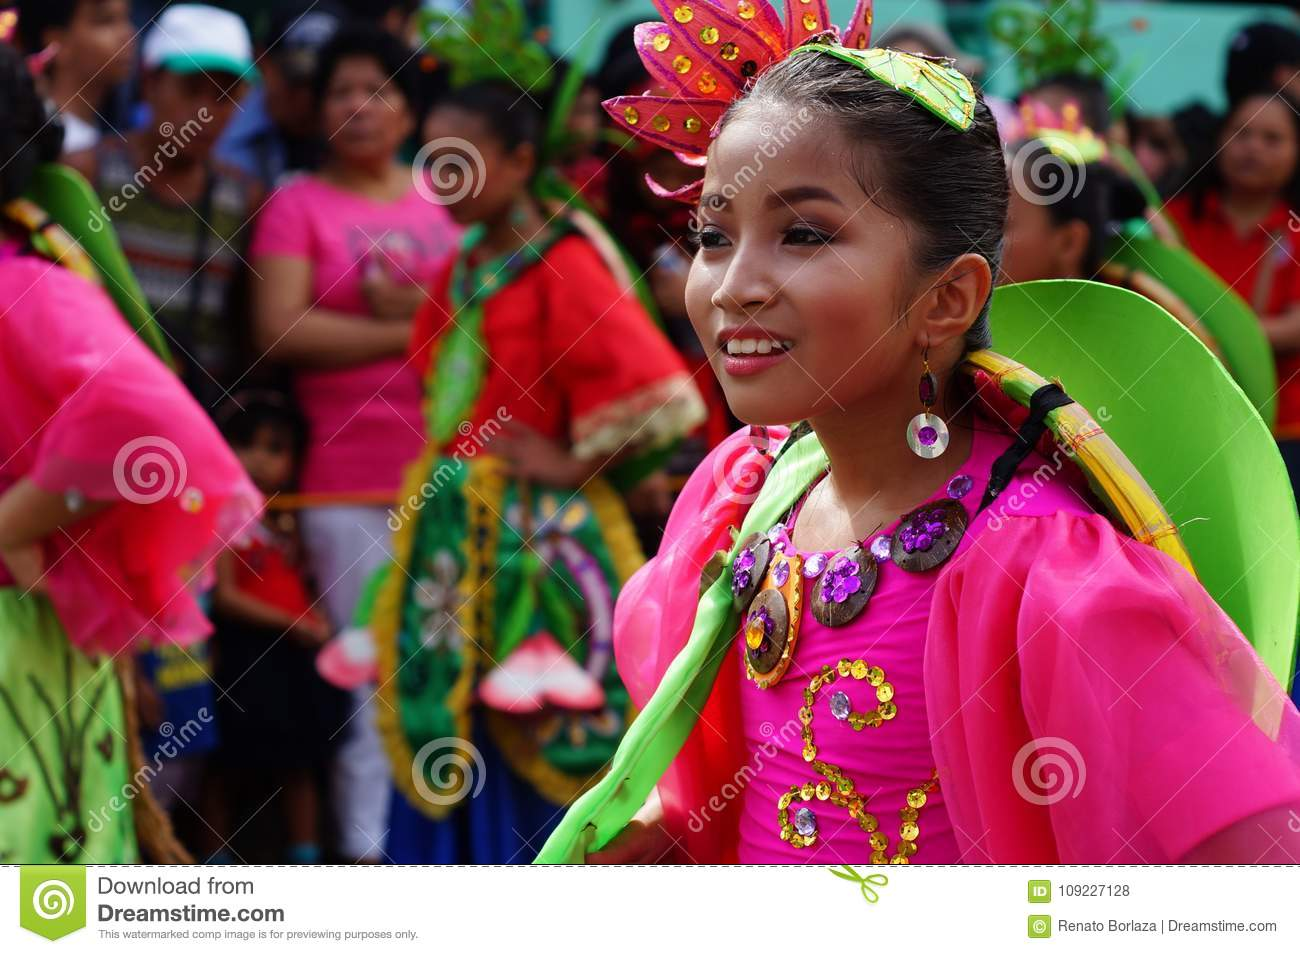 Girl carnival dancer in ethnic costumes dances in delight along the road